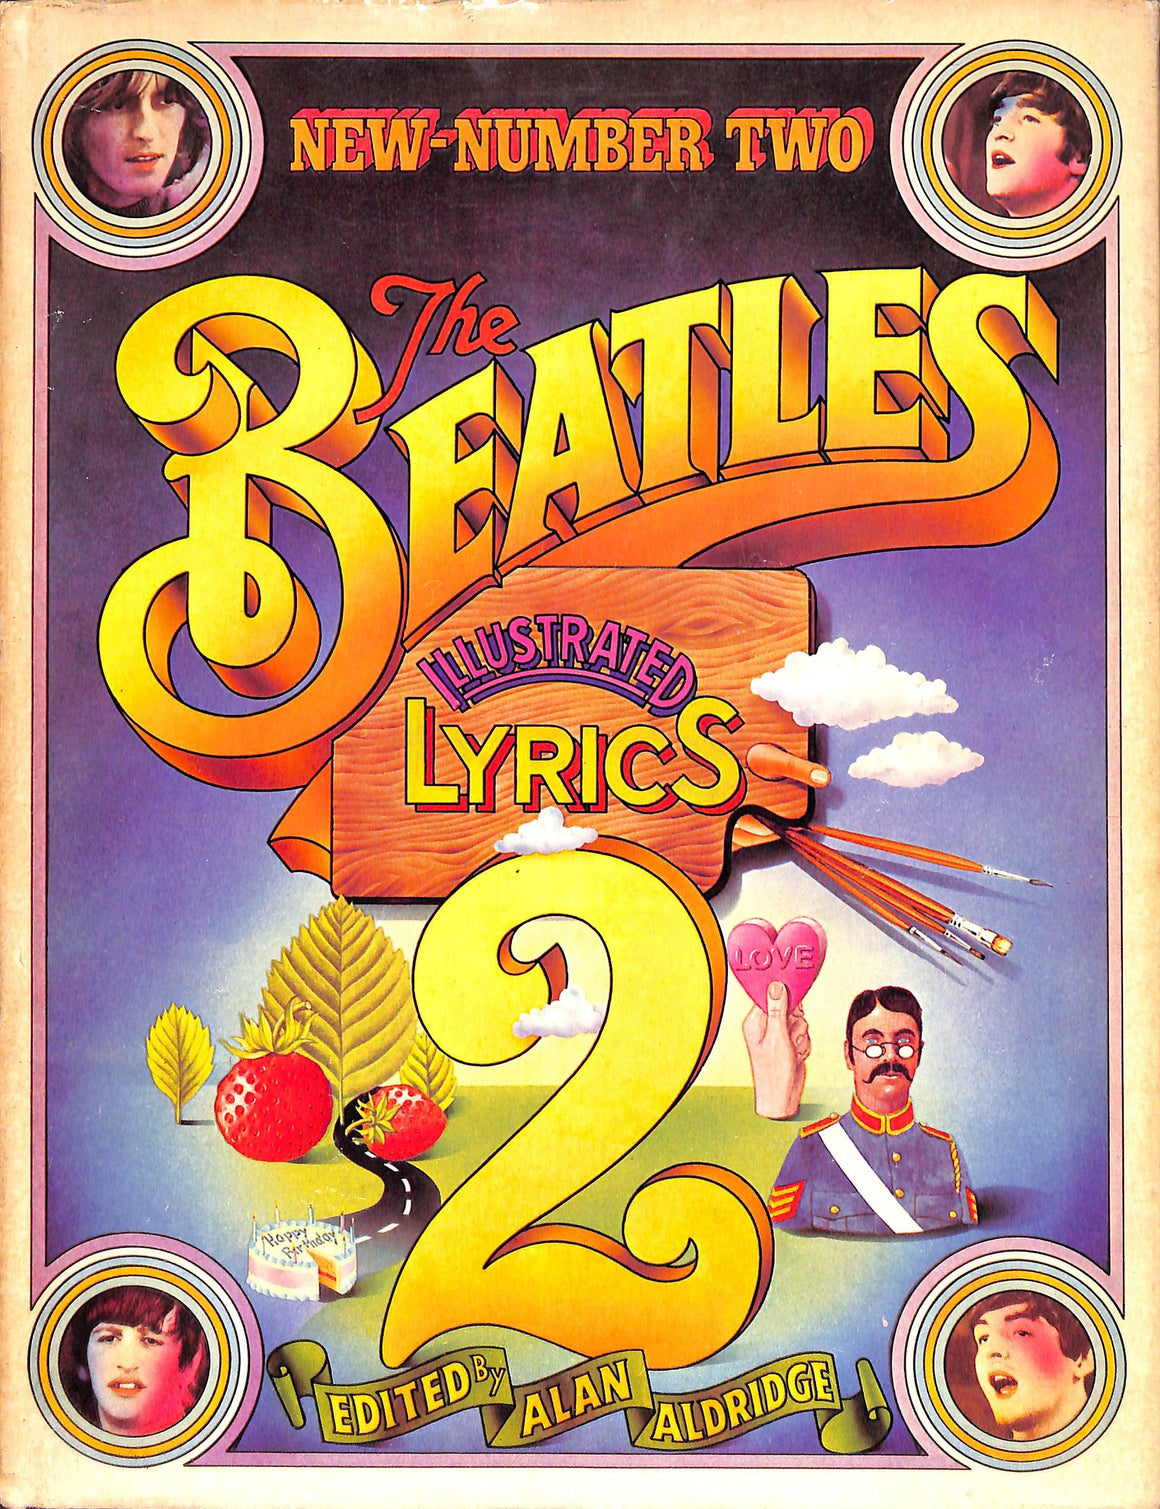 """The Beatles Illustrated Lyrics 2"" 1971 ALDRIDGE, Alan [Edited by]"